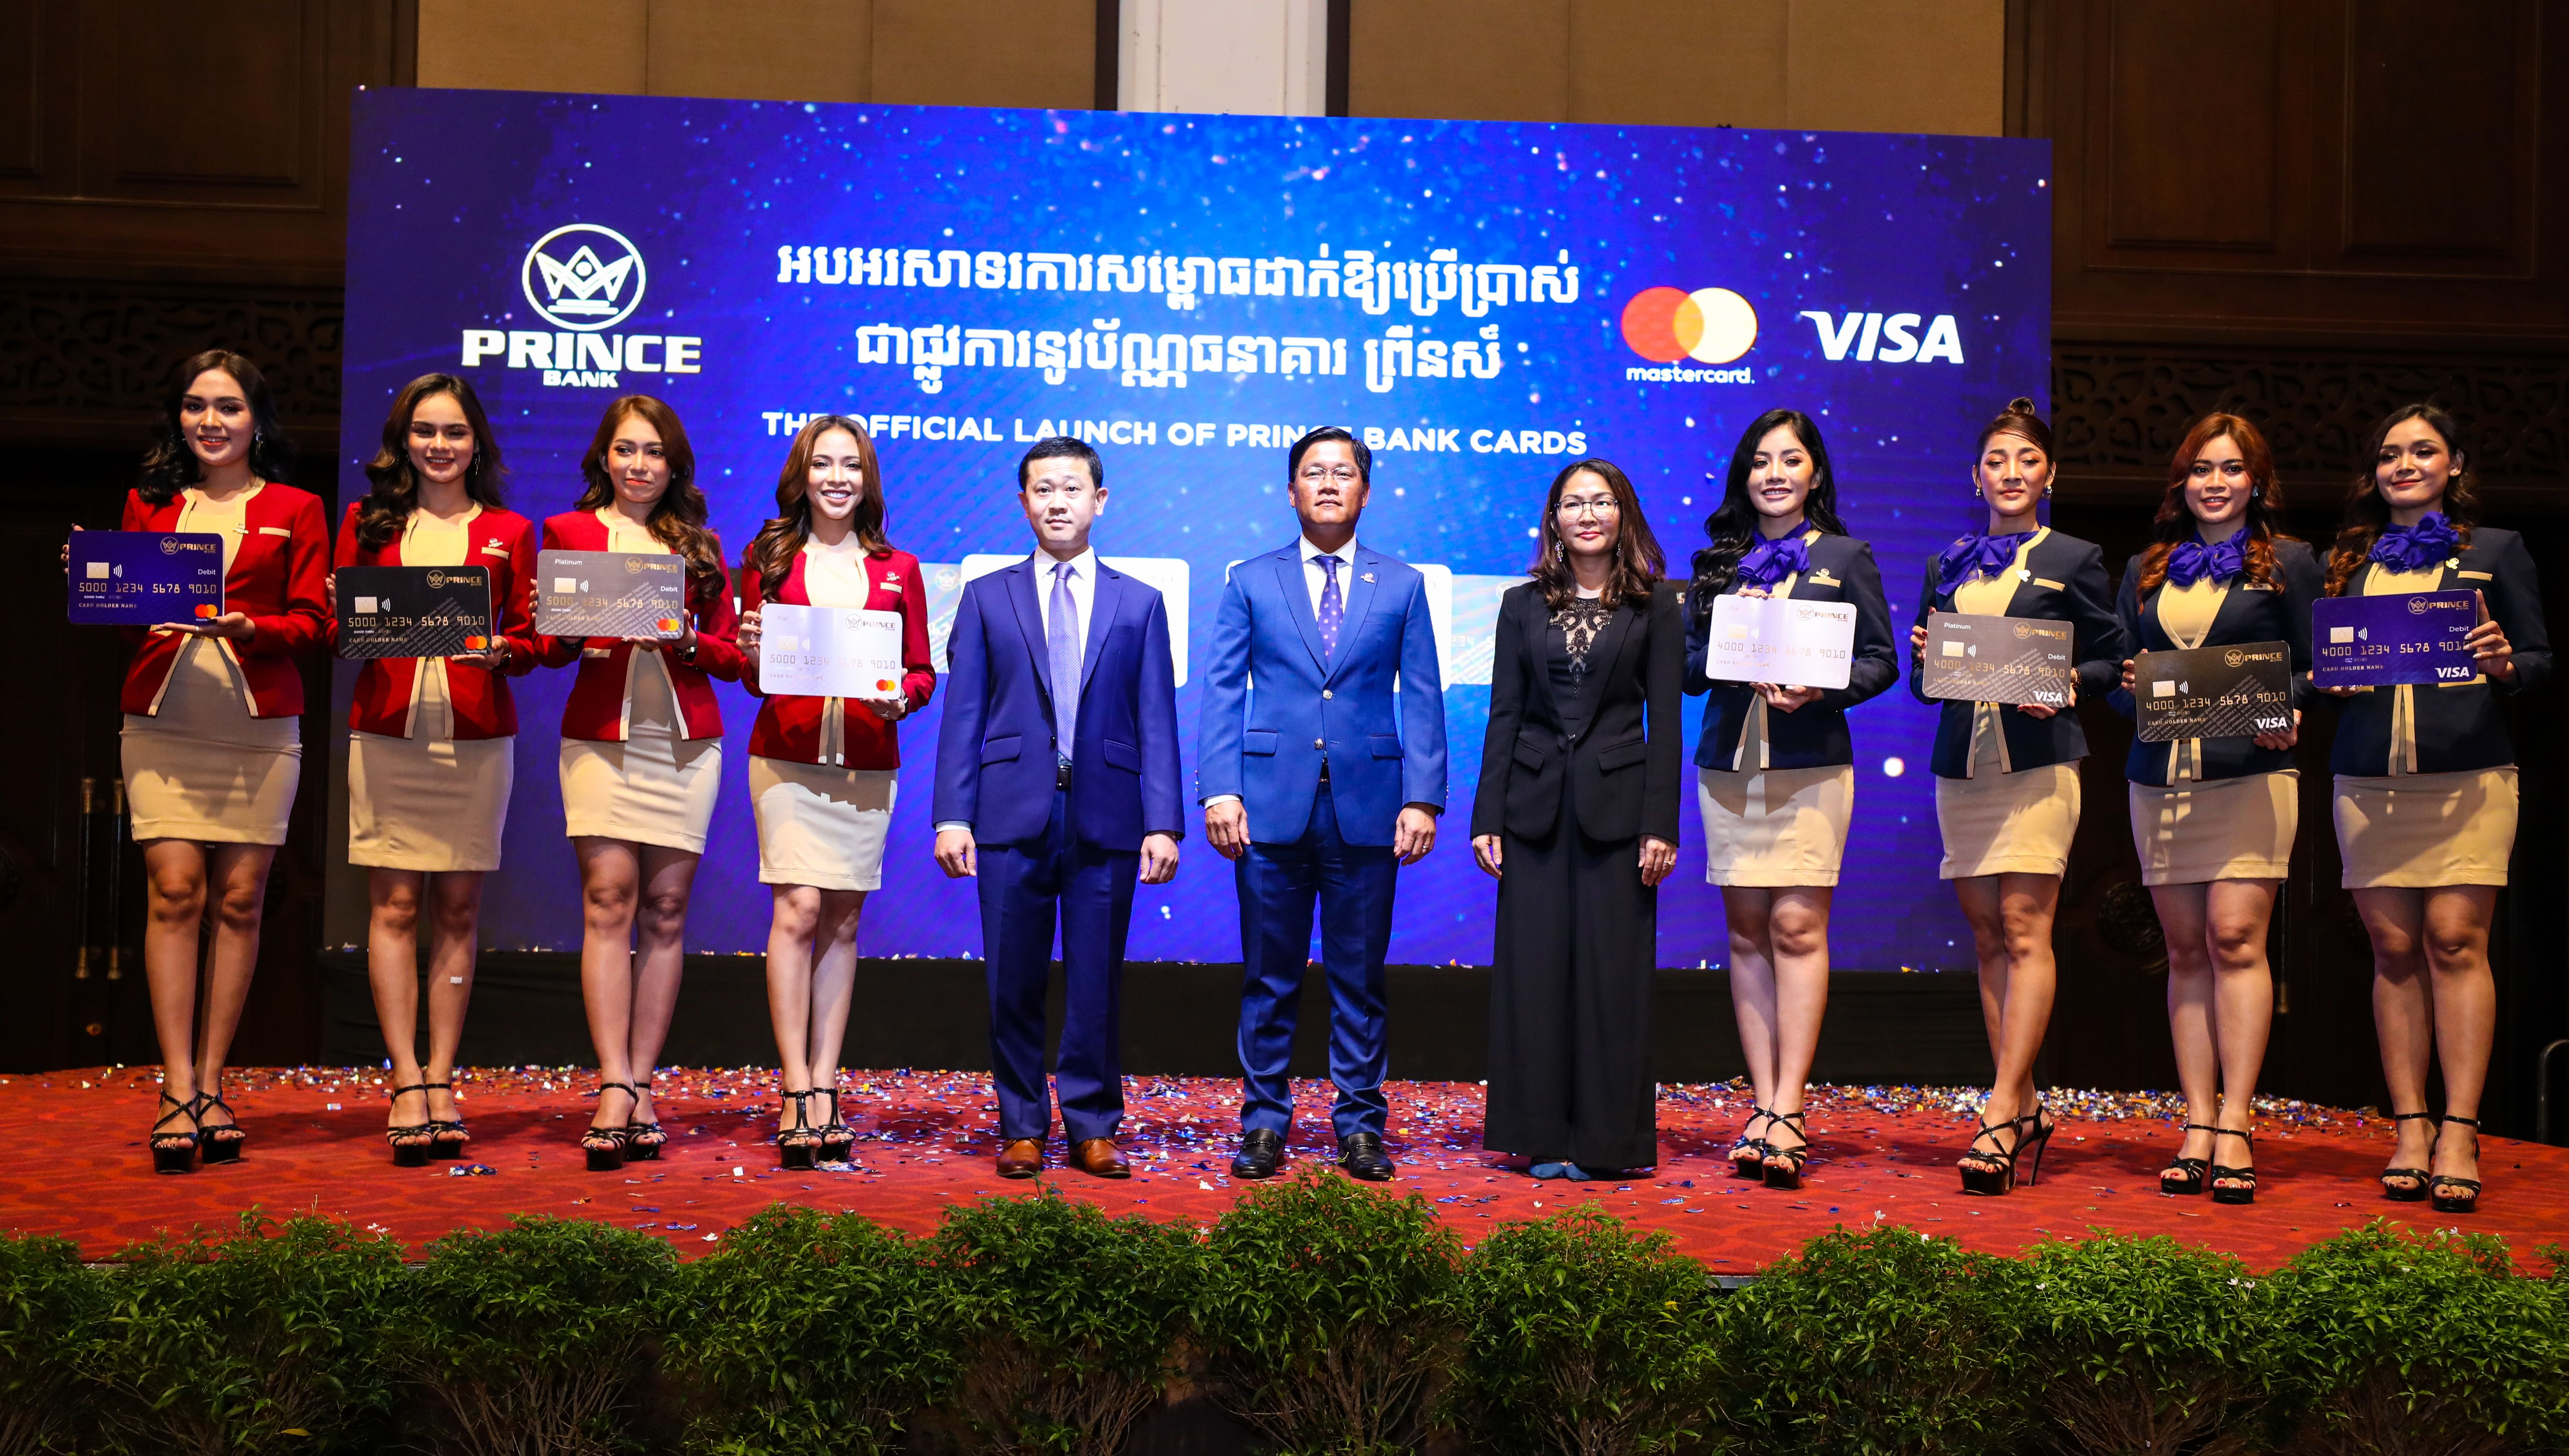 The Official Launch of Prince Bank Cards